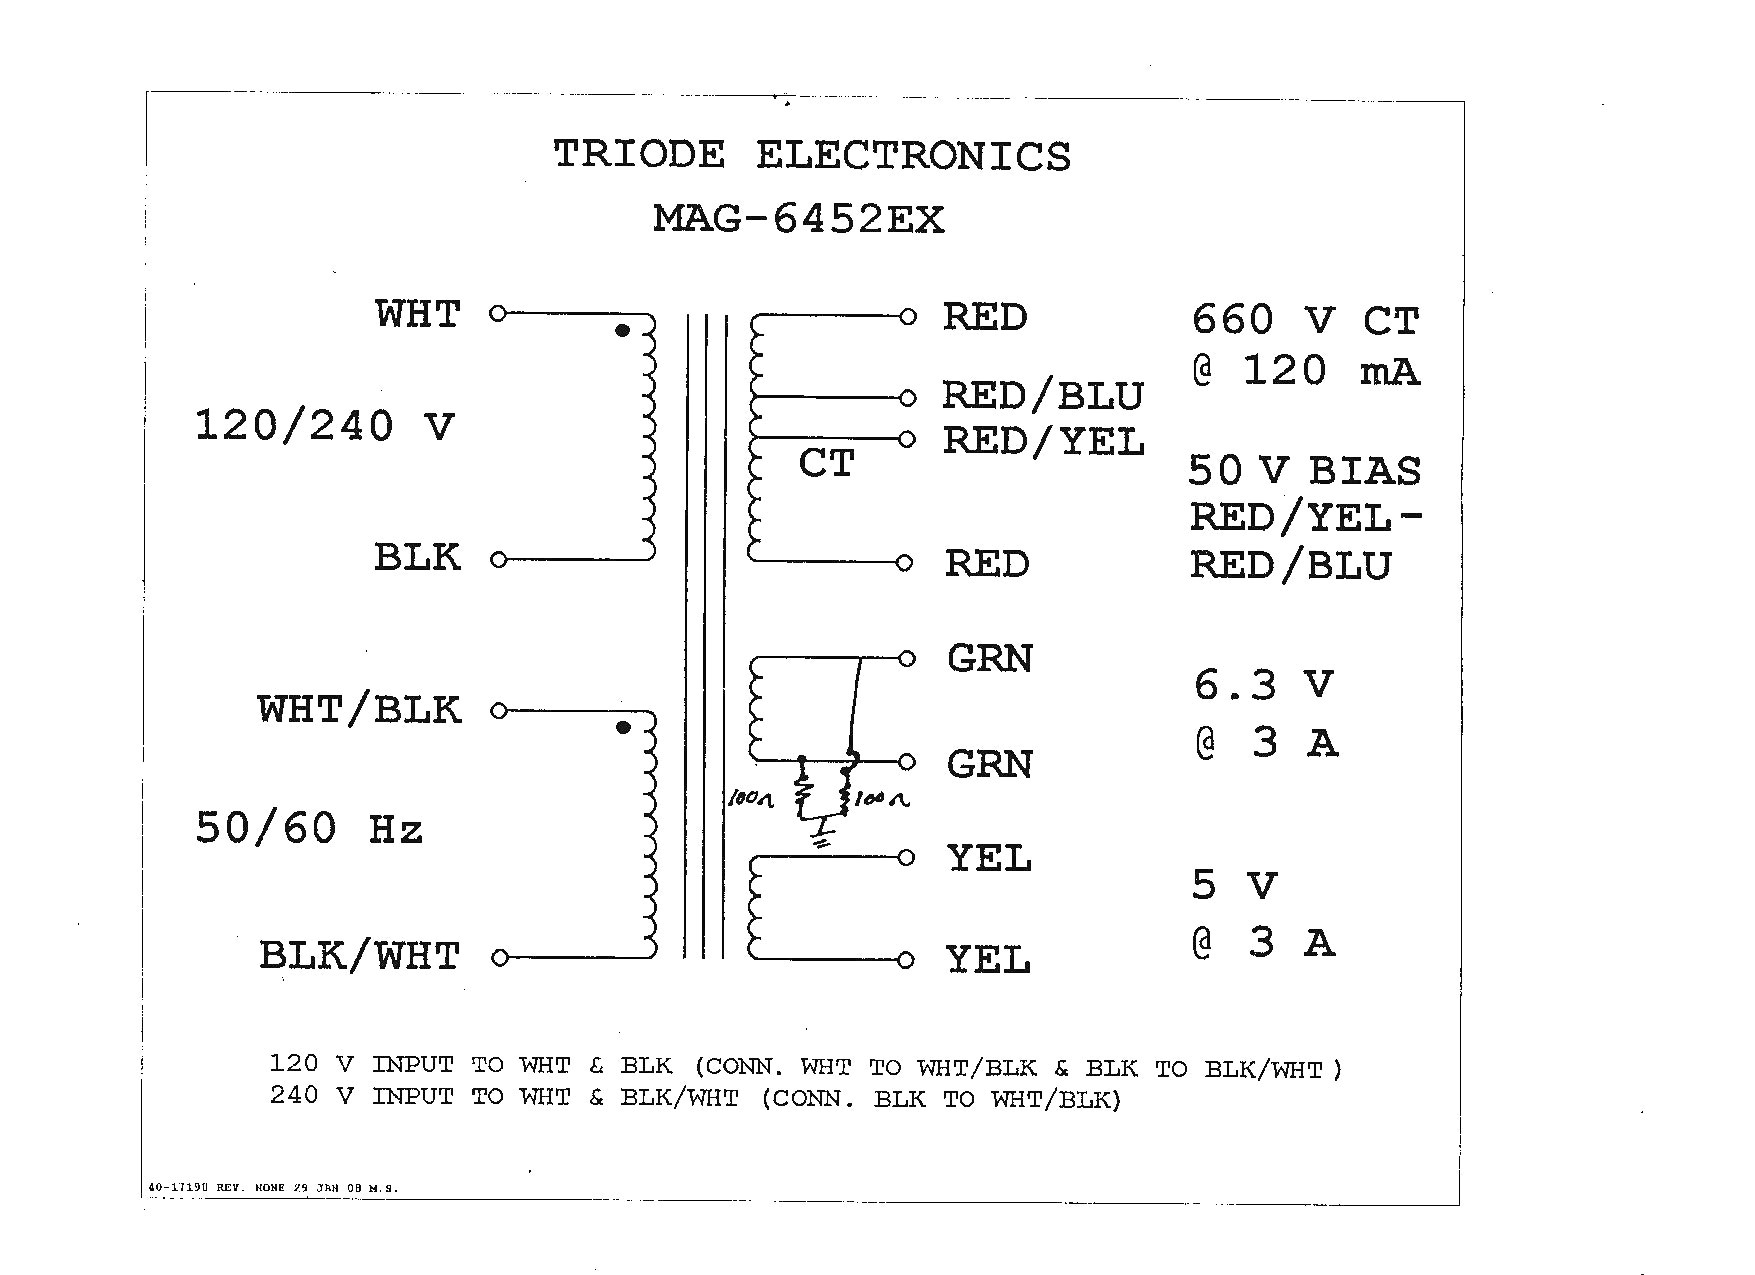 3 phase buck boost transformer wiring diagram Collection-3 Phase Buck Boost Transformer Wiring Diagram Popular Acme Transformers Wiring Diagrams Acme Transformer Wiring Diagrams 6-d